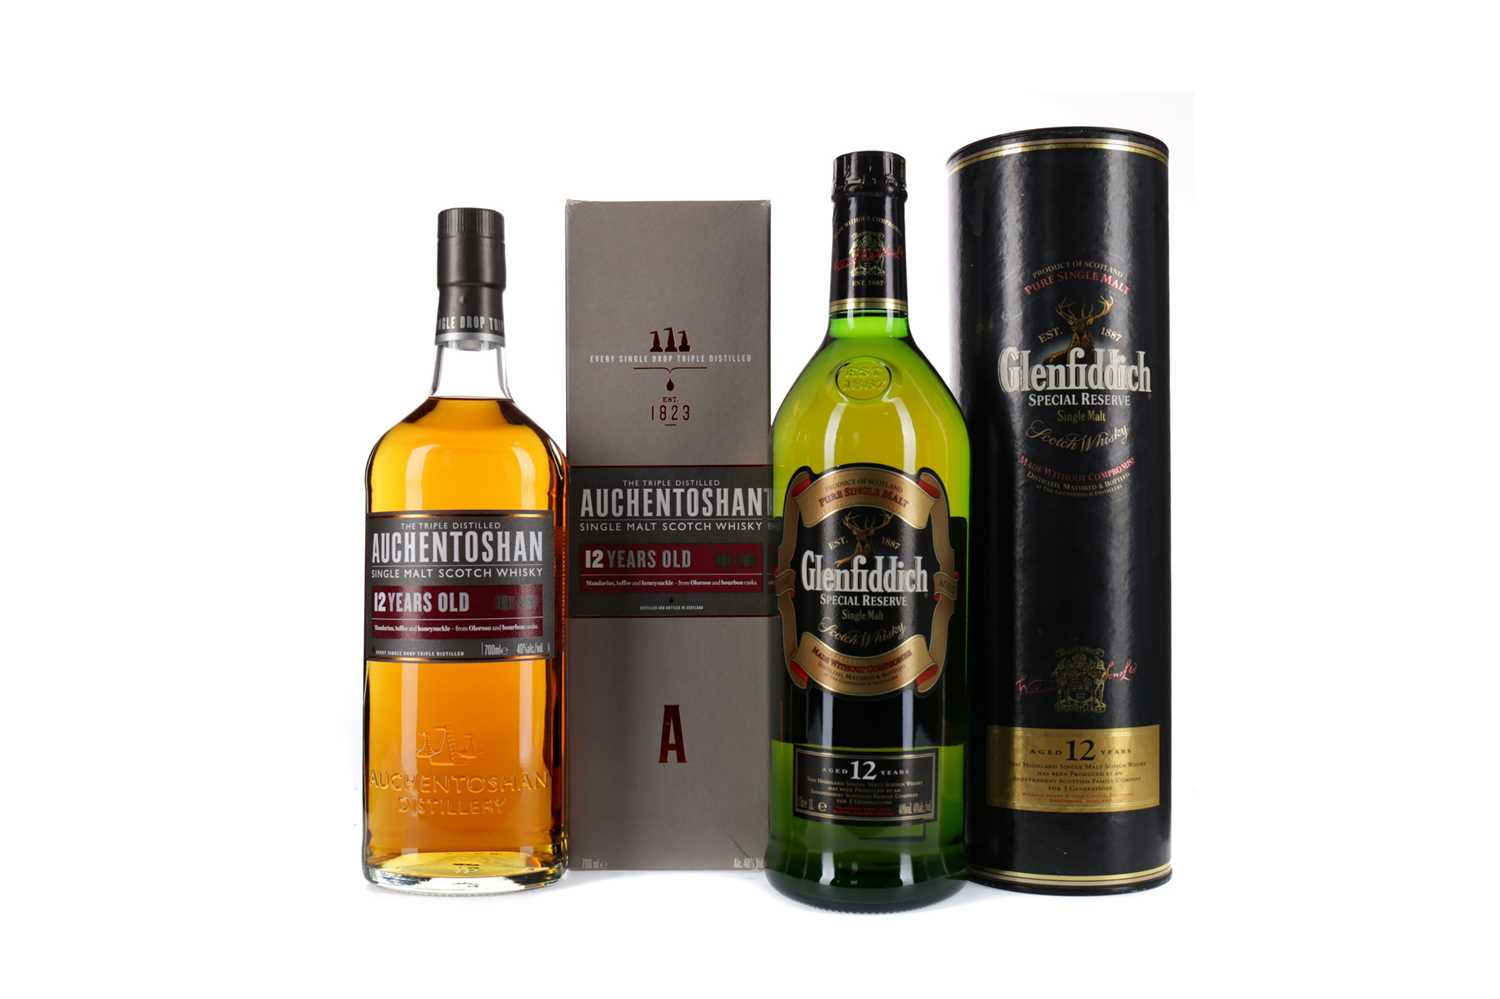 Lot 46 - GLENFIDDICH SPECIAL RESERVE AGED 12 YEARS AND AUCHENTOSHAN 12 YEARS OLD